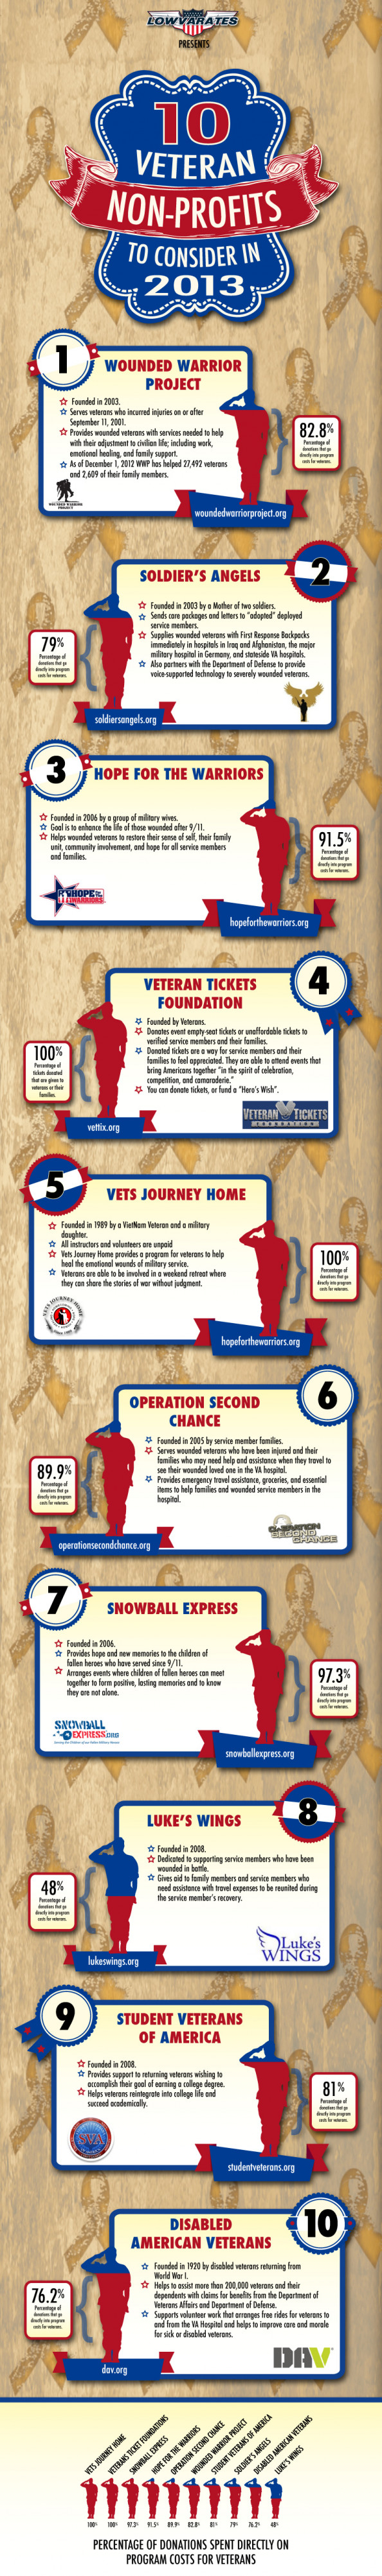 10 Veteran Non-Profits  Infographic